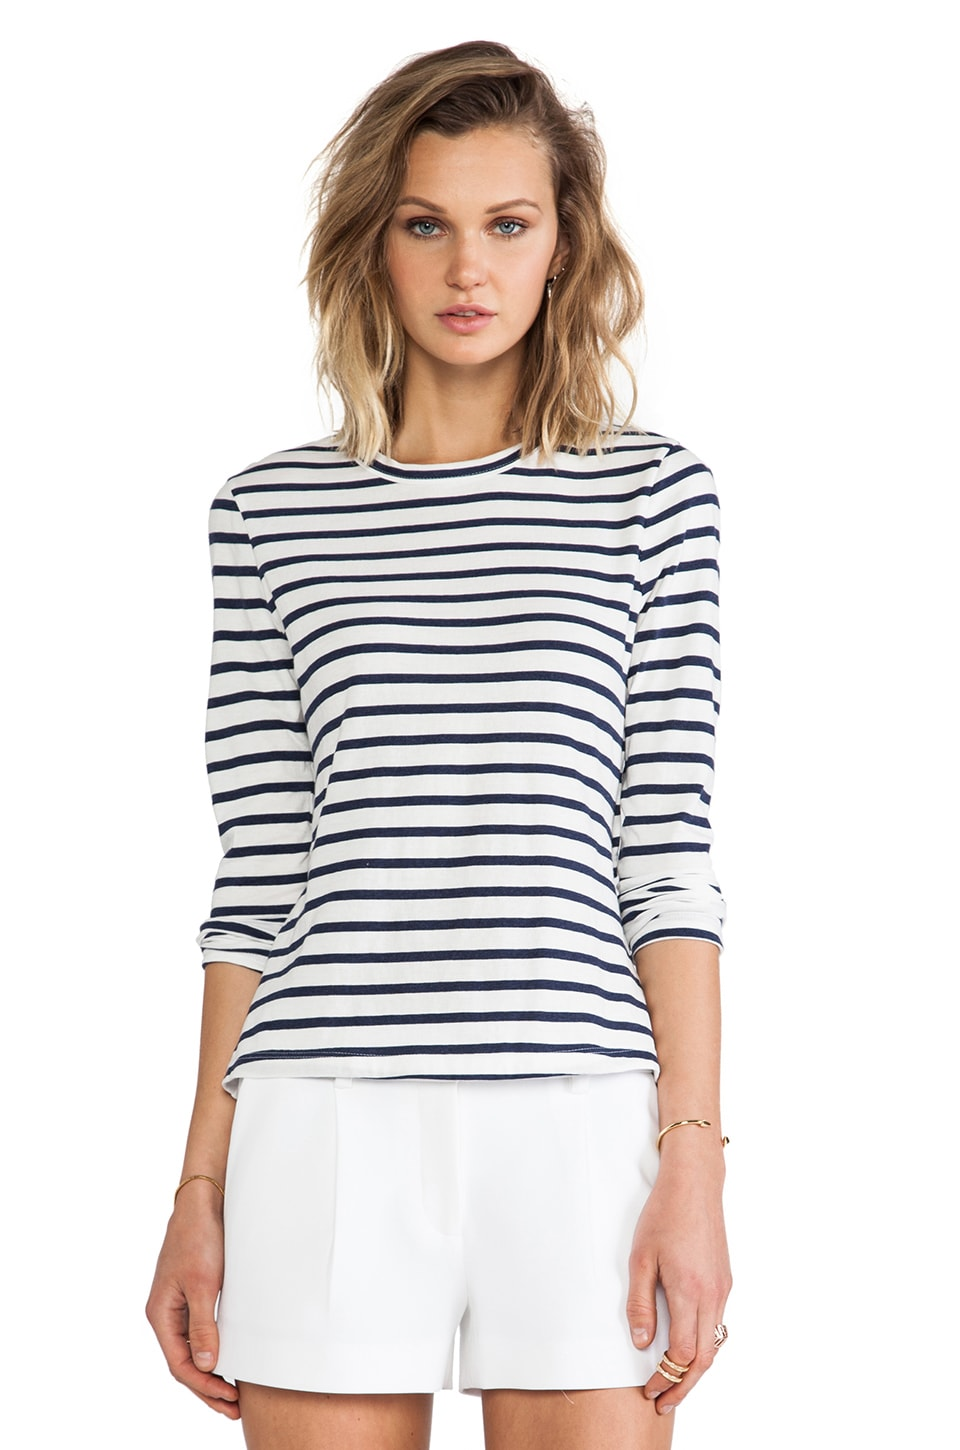 A.L.C. Dru Stripe Tee in White & Navy